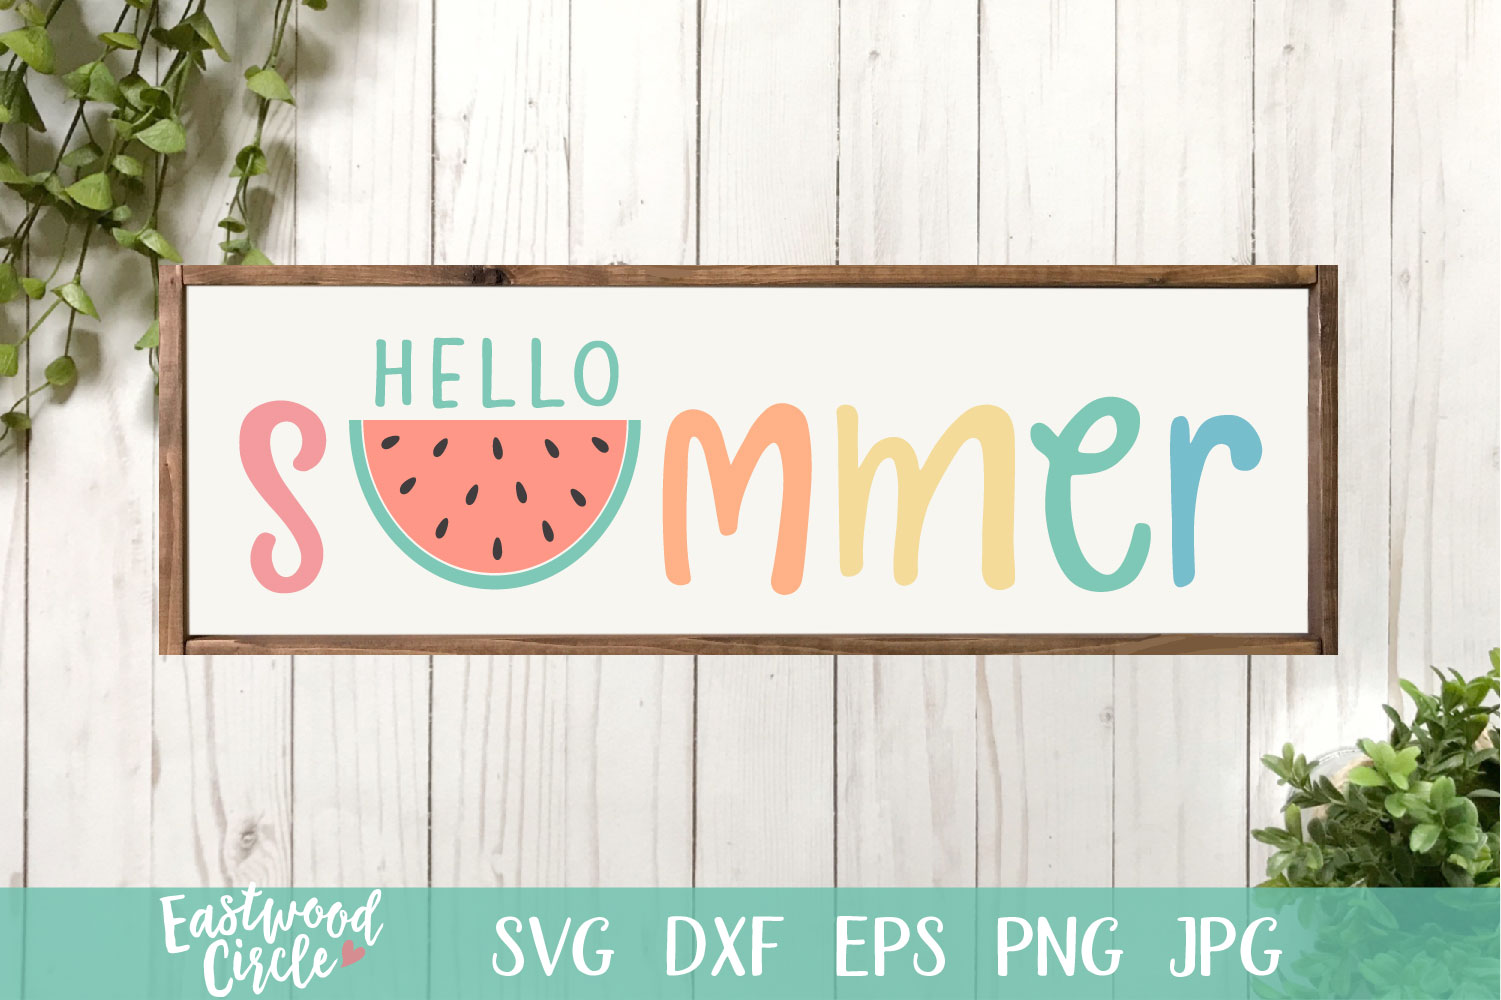 Hello Summer with Watermelon - A Summer SVG File for Signs example image 1